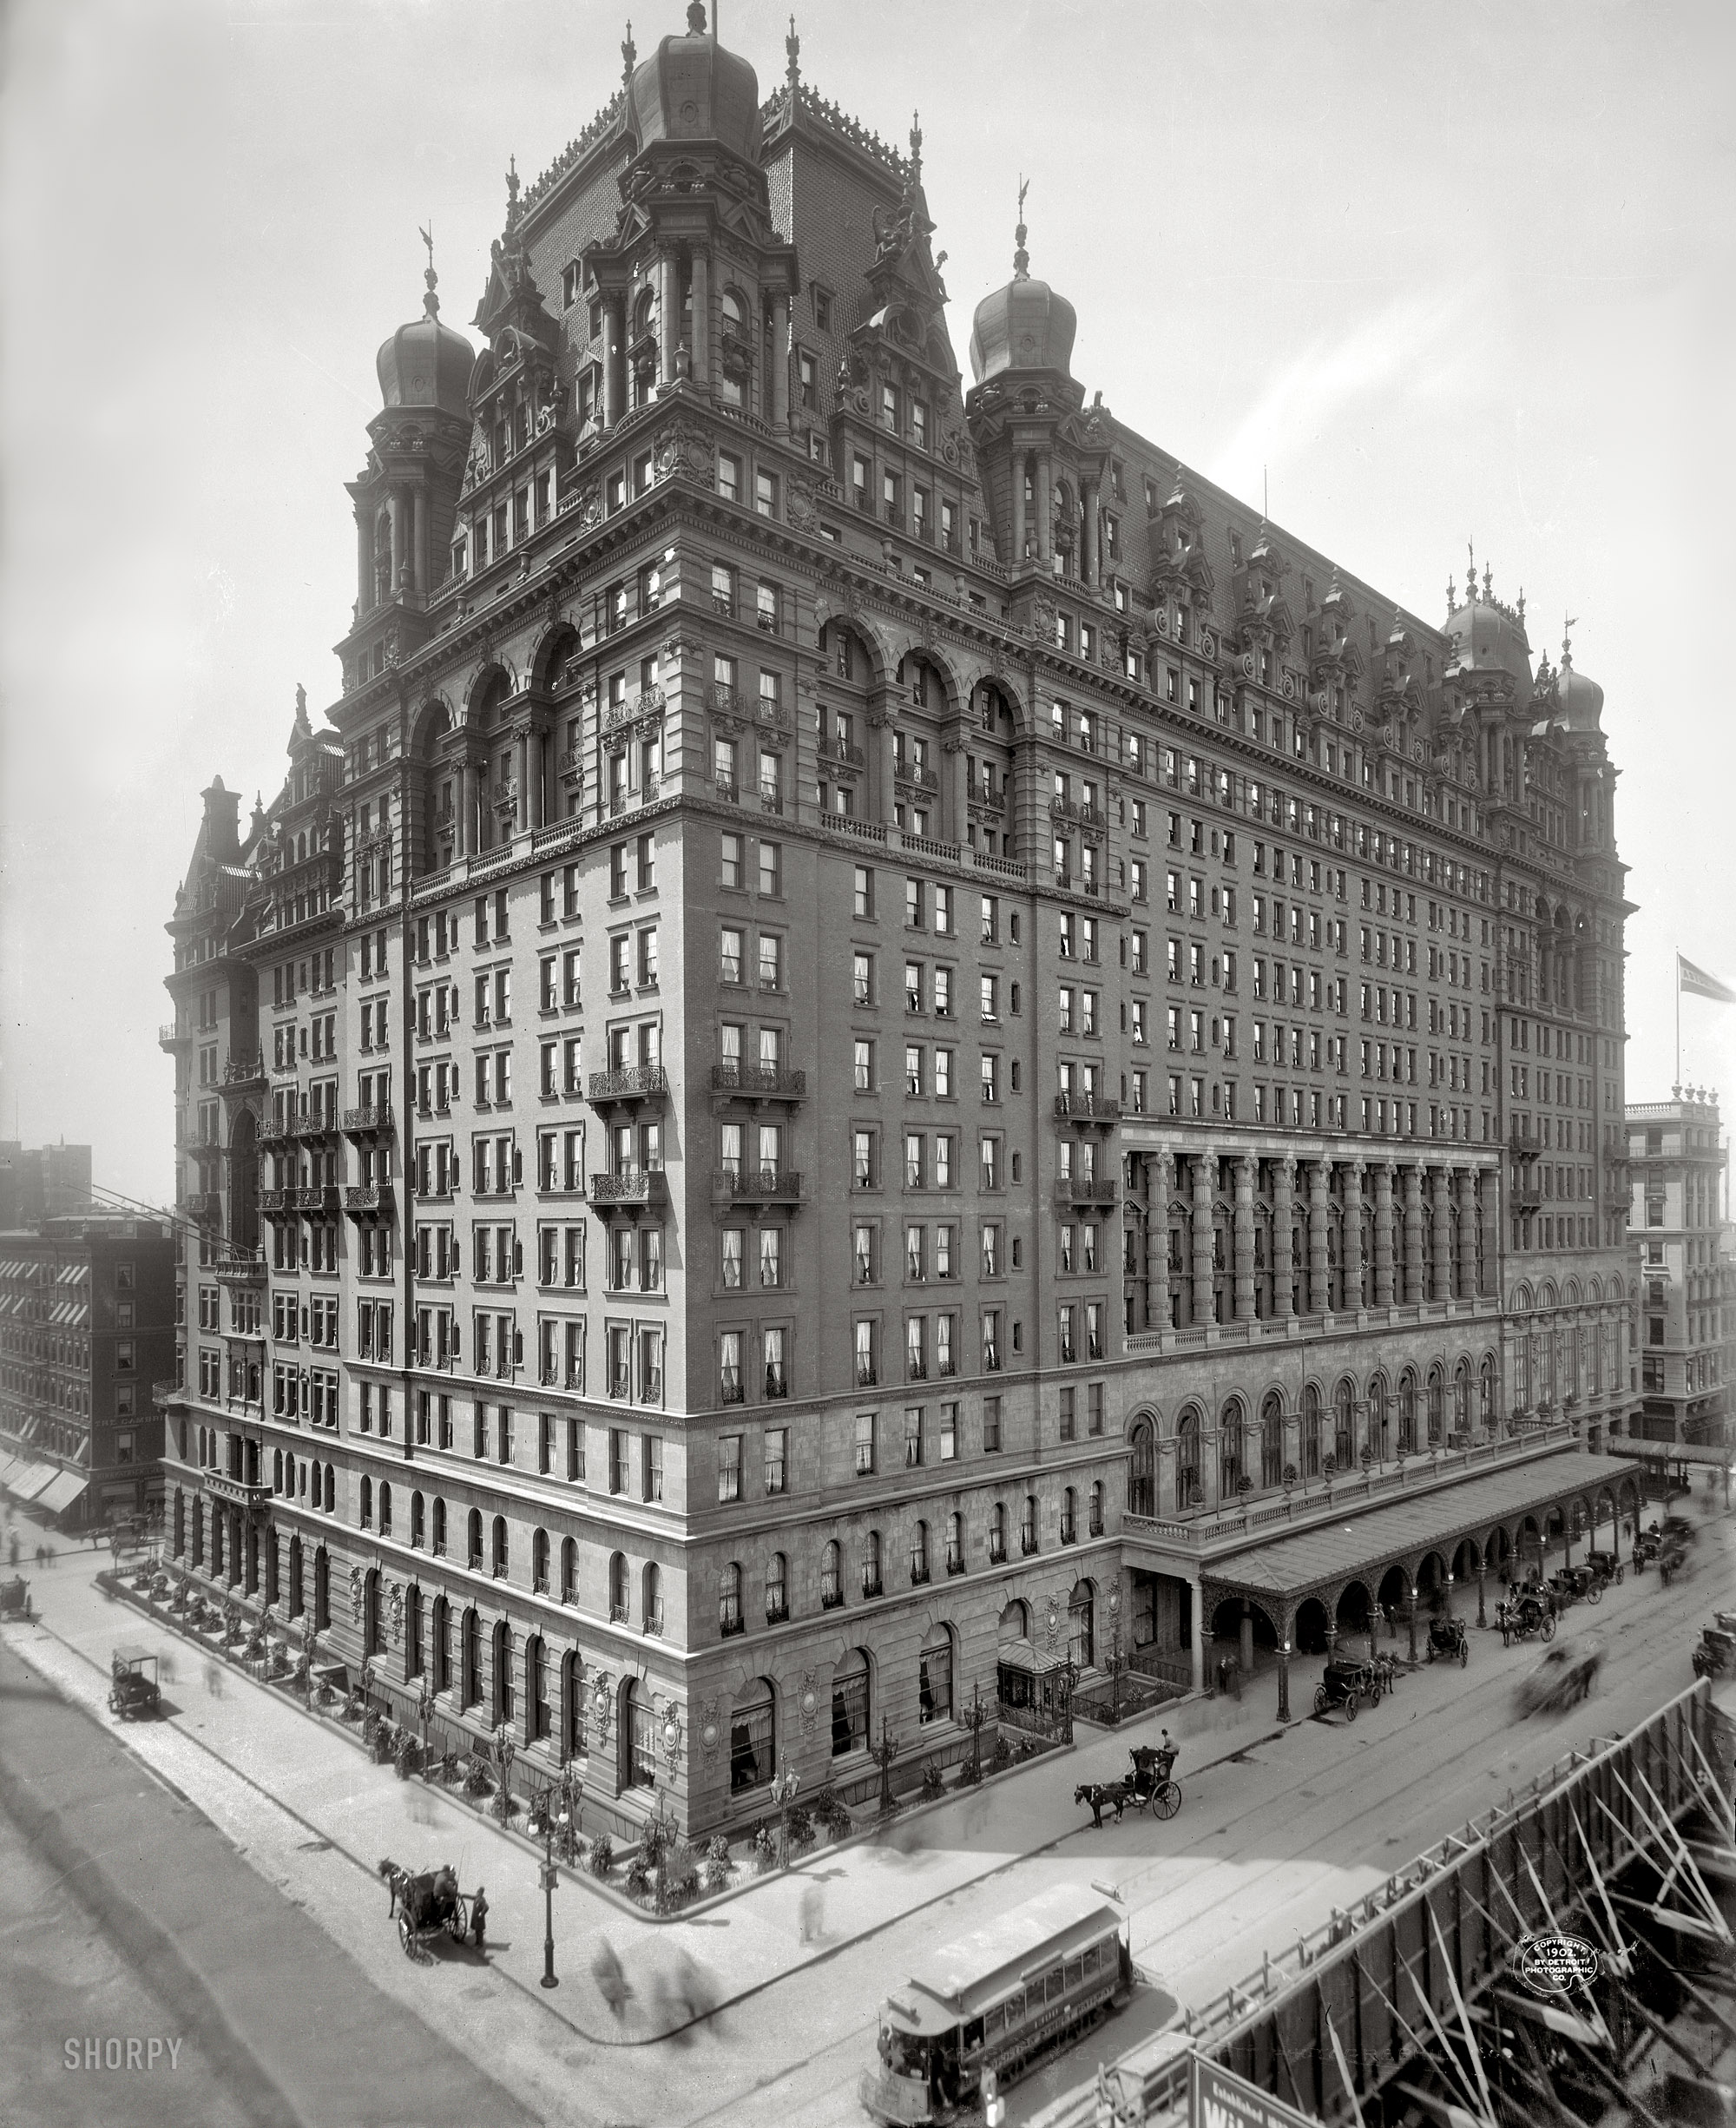 18 And Older Hotels In New York: The Complicated History Of The Waldorf-Astoria